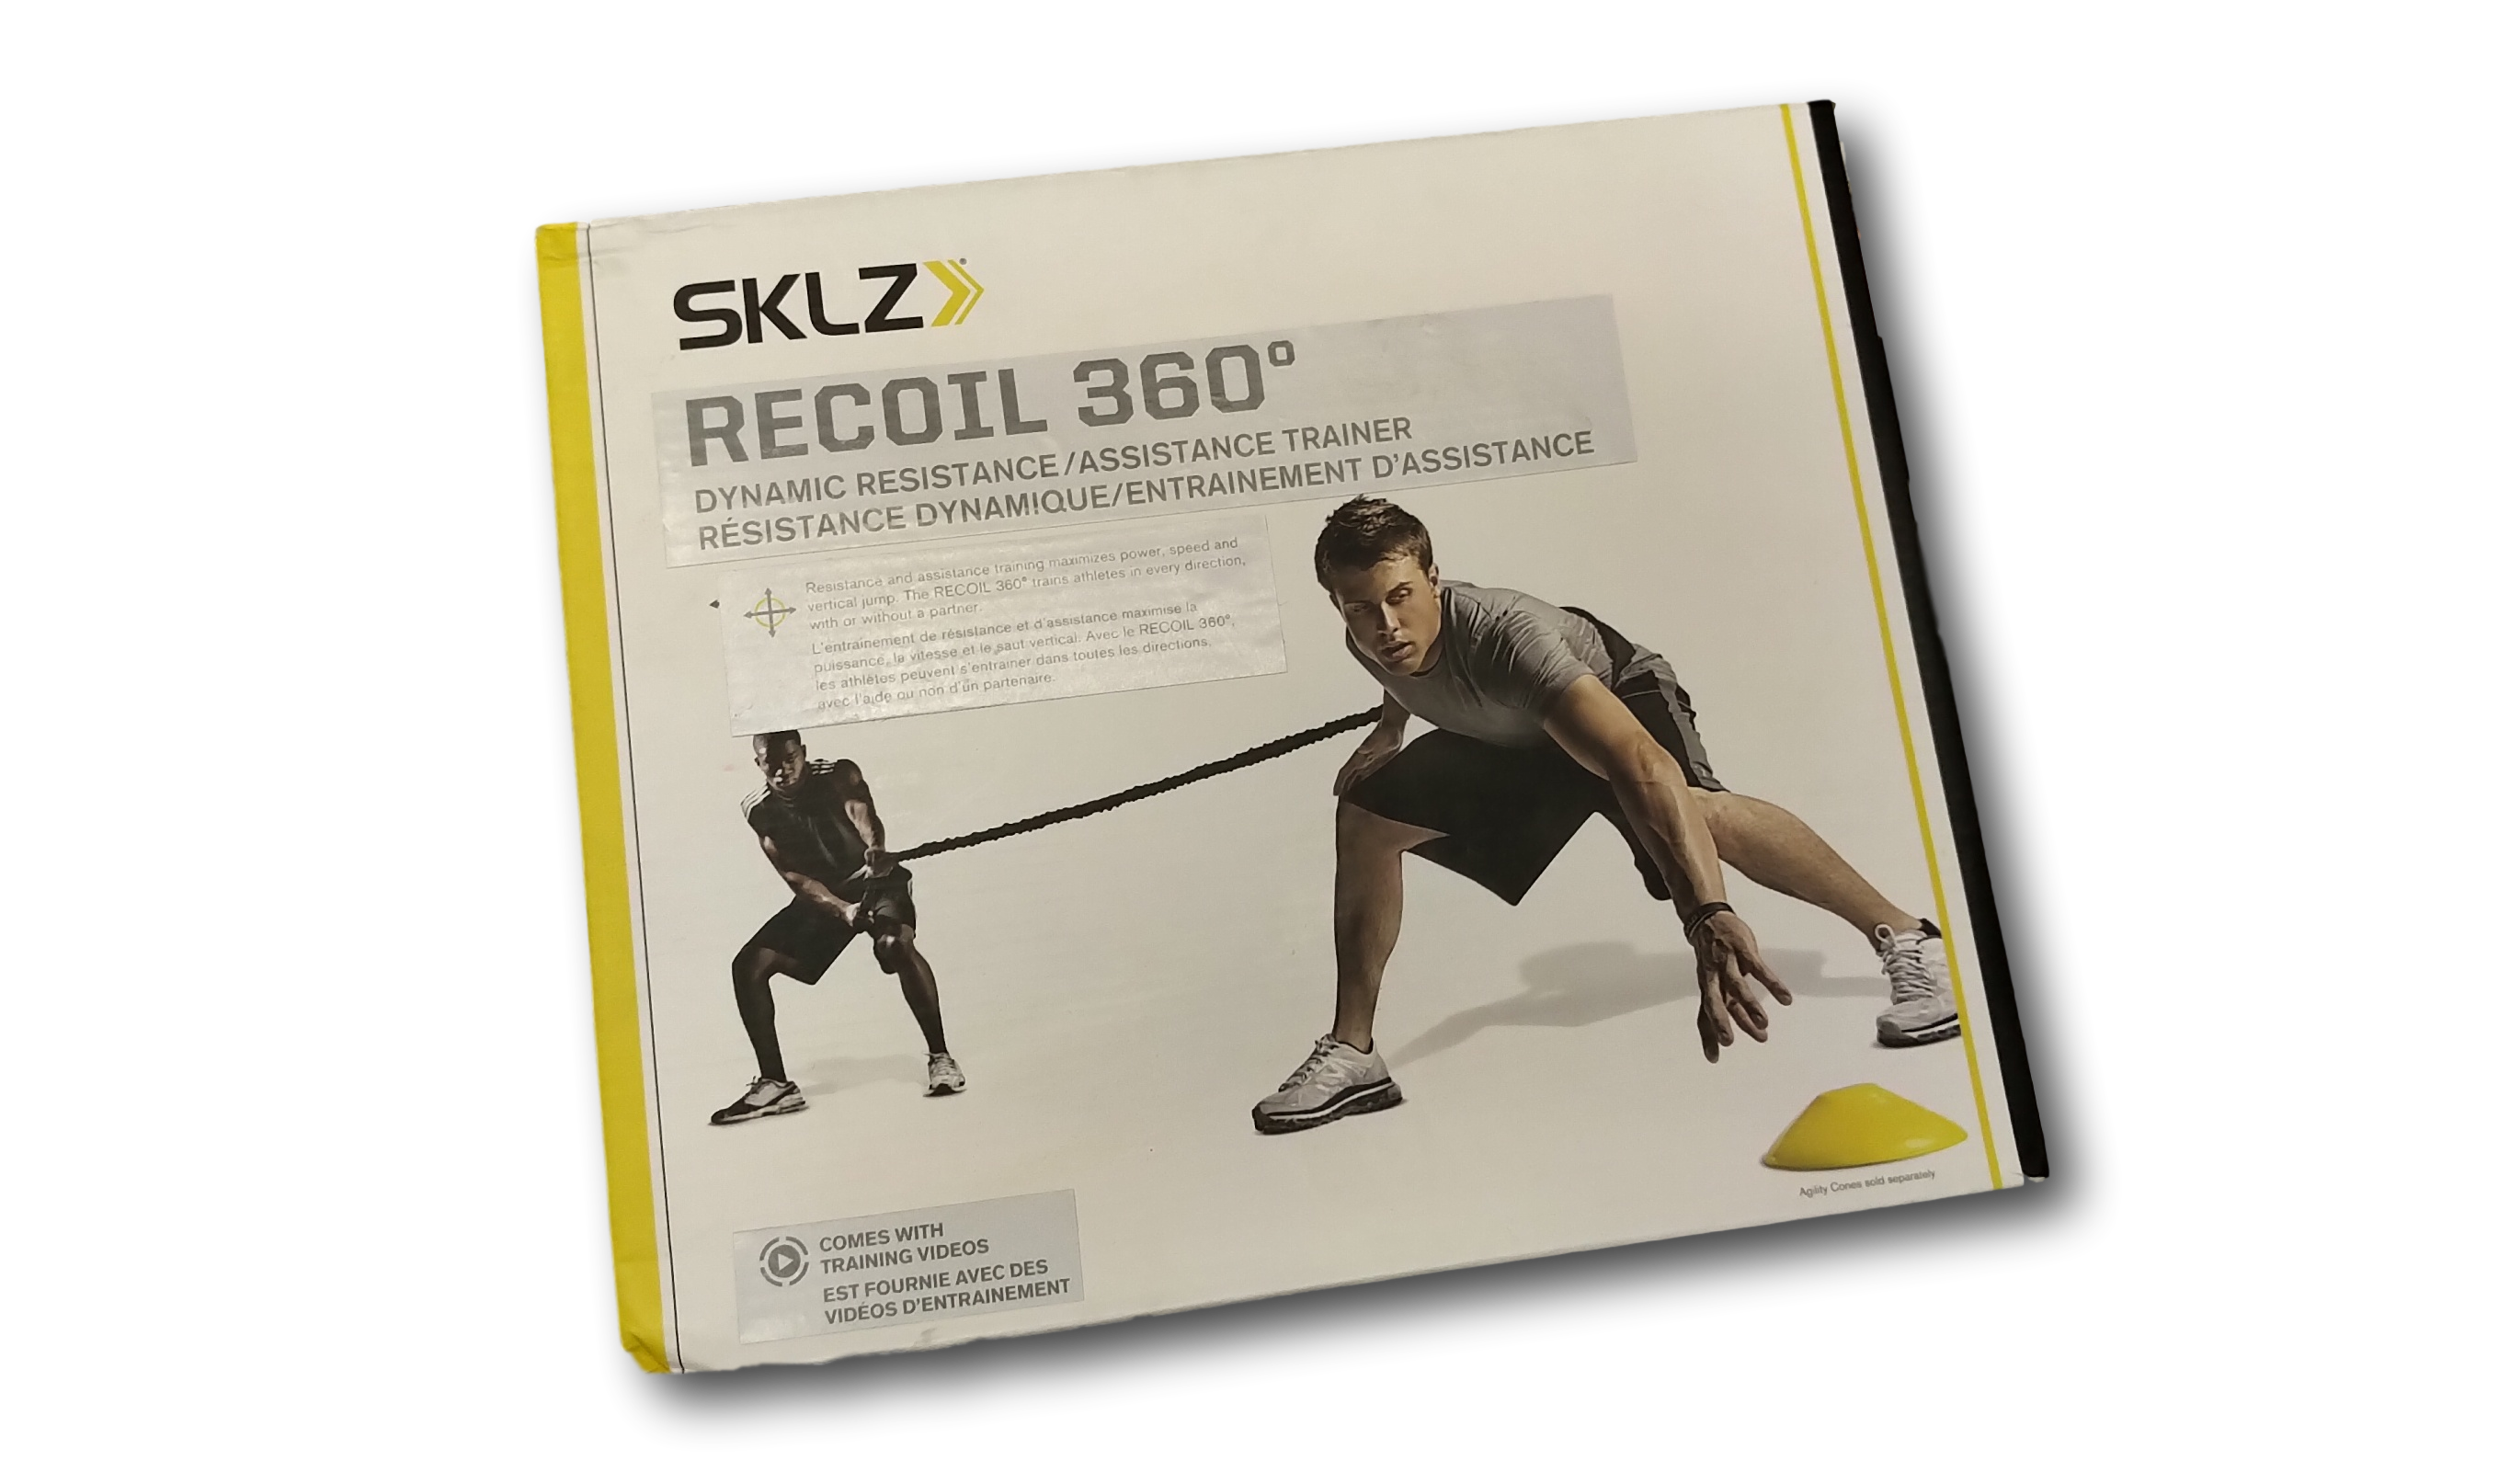 recoil product image